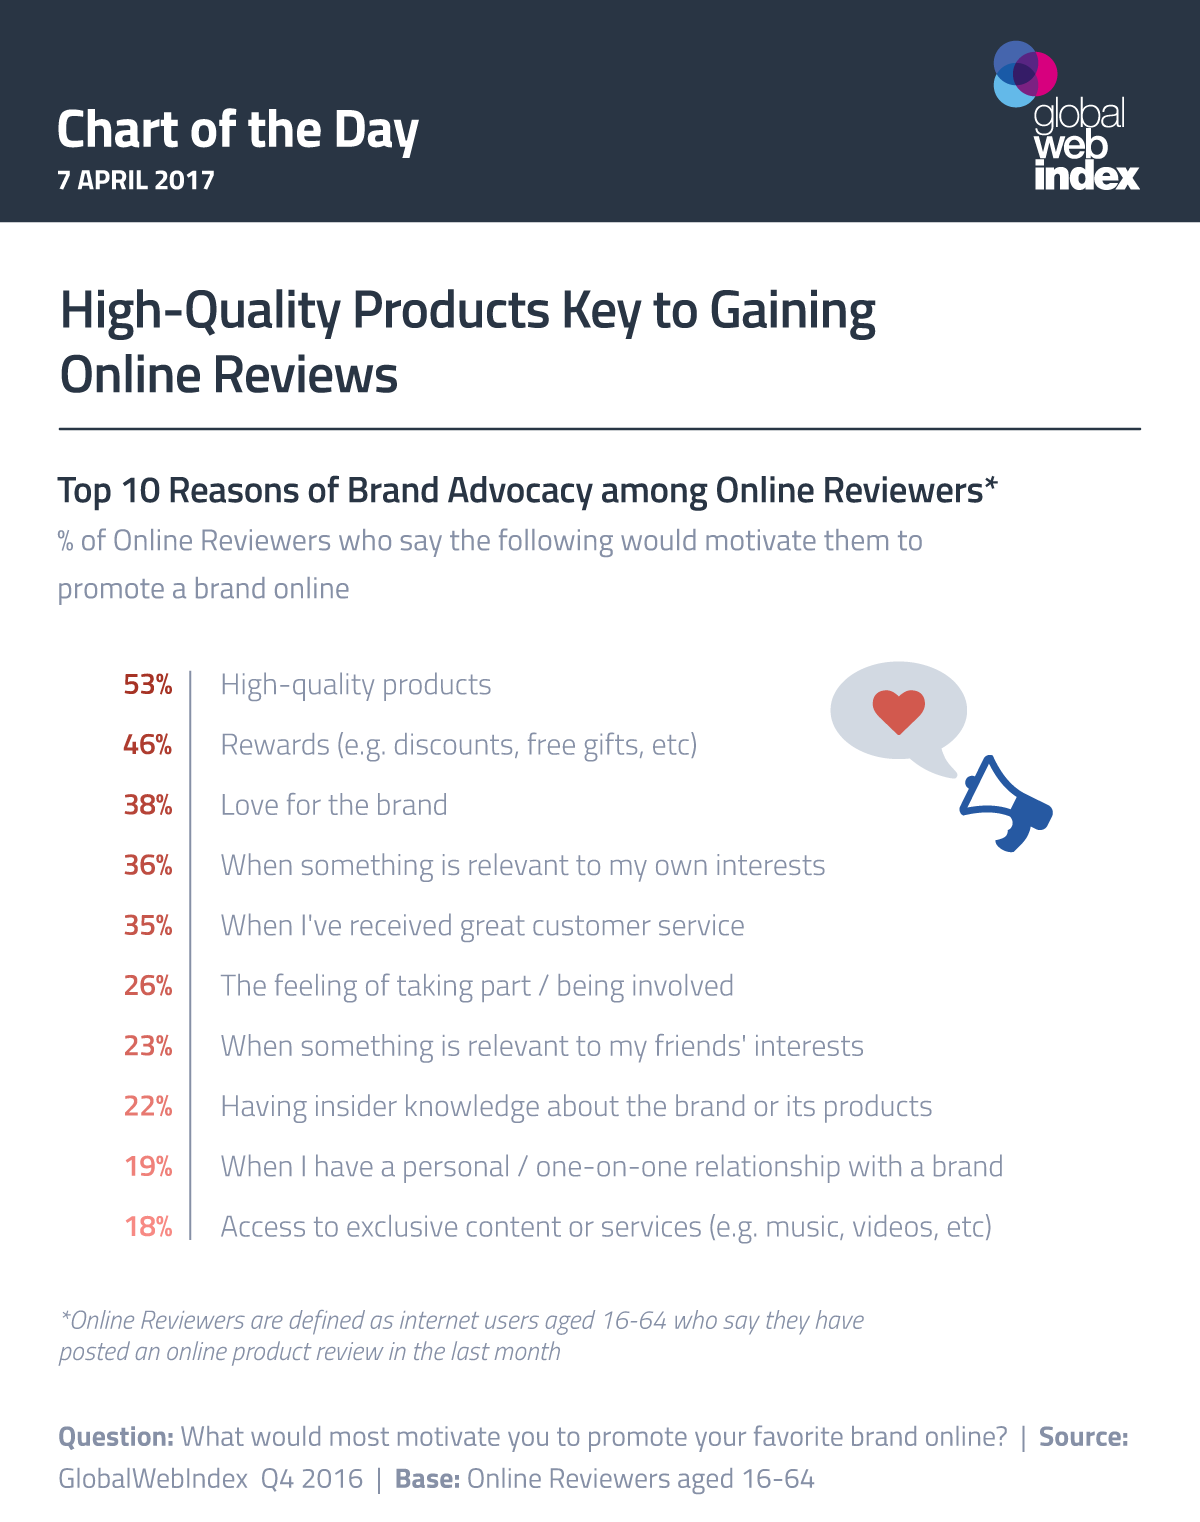 High-Quality Products Key to Gaining Online Reviews